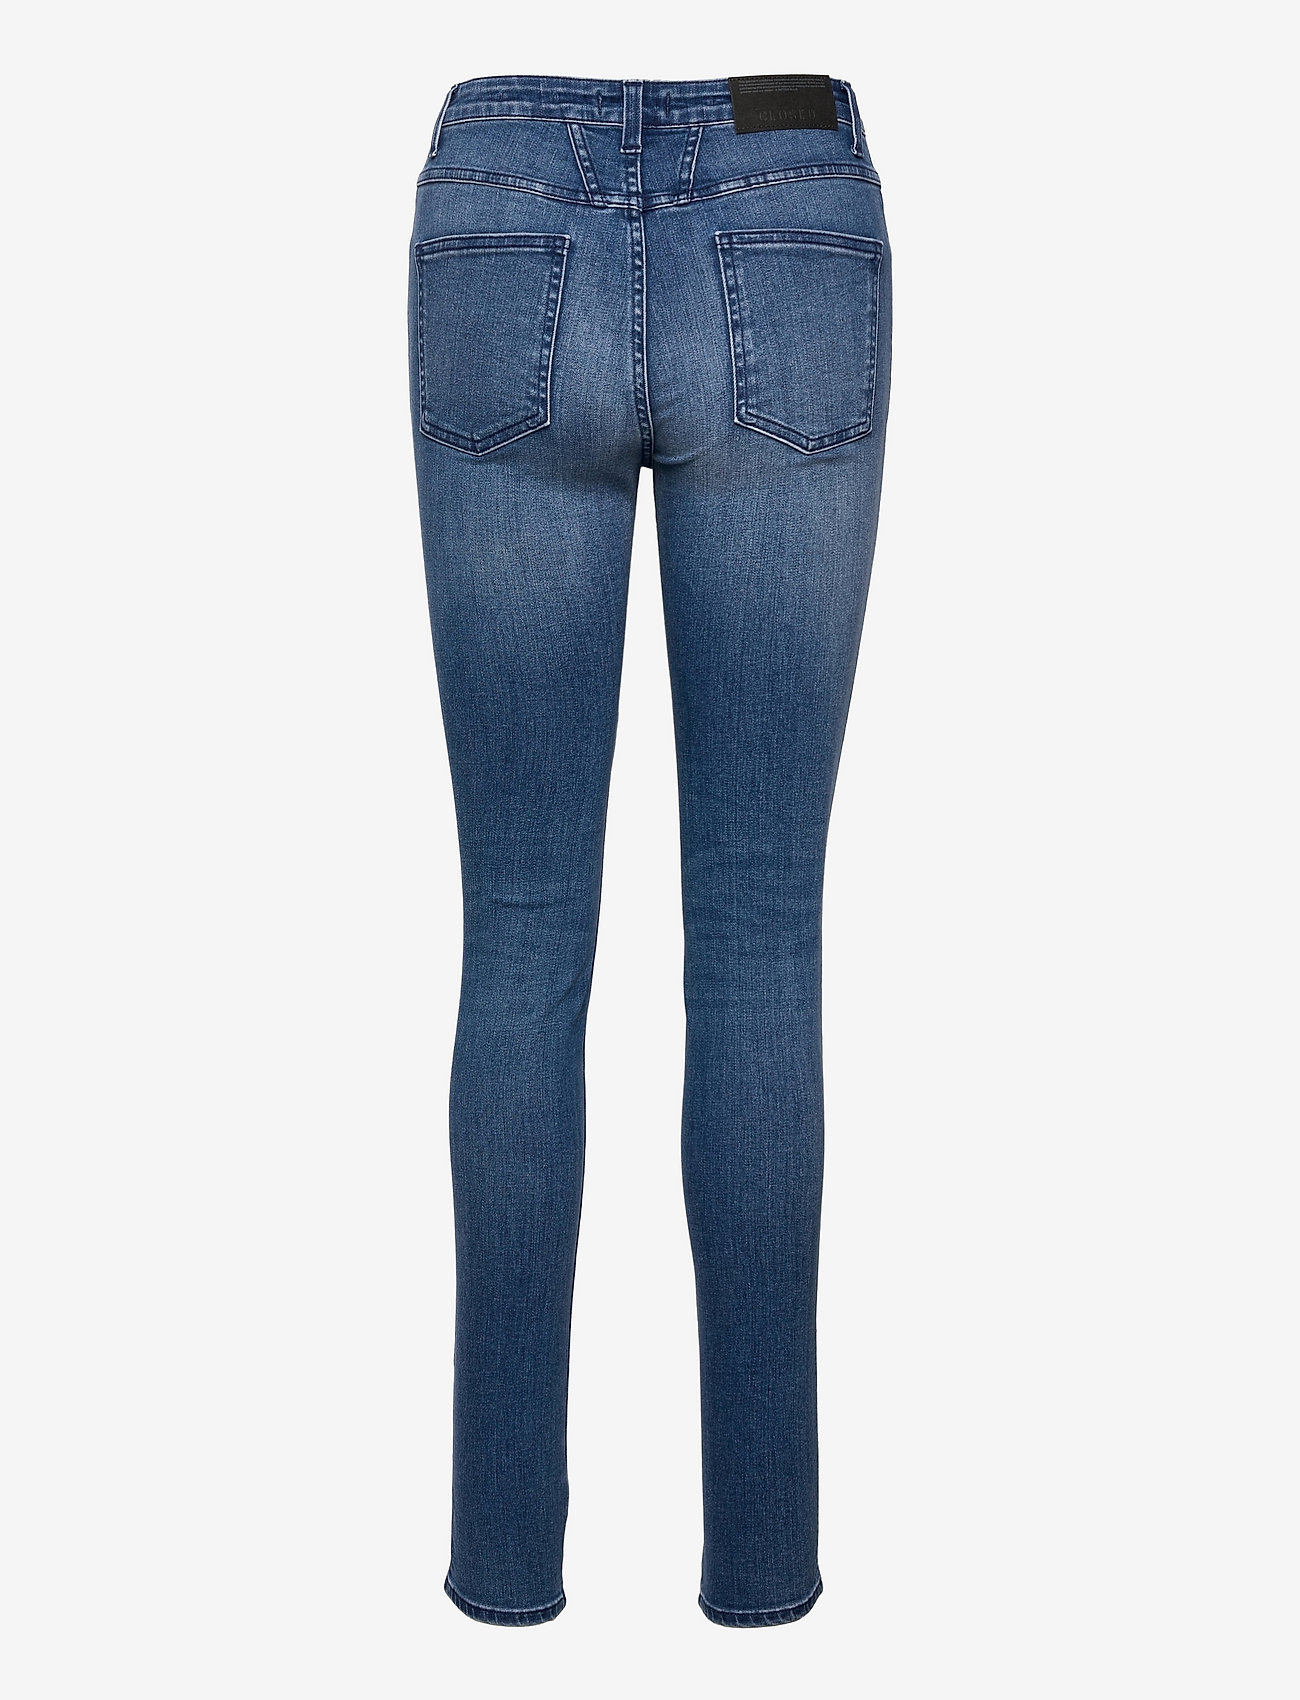 Closed - womens pant - skinny jeans - mid blue - 1